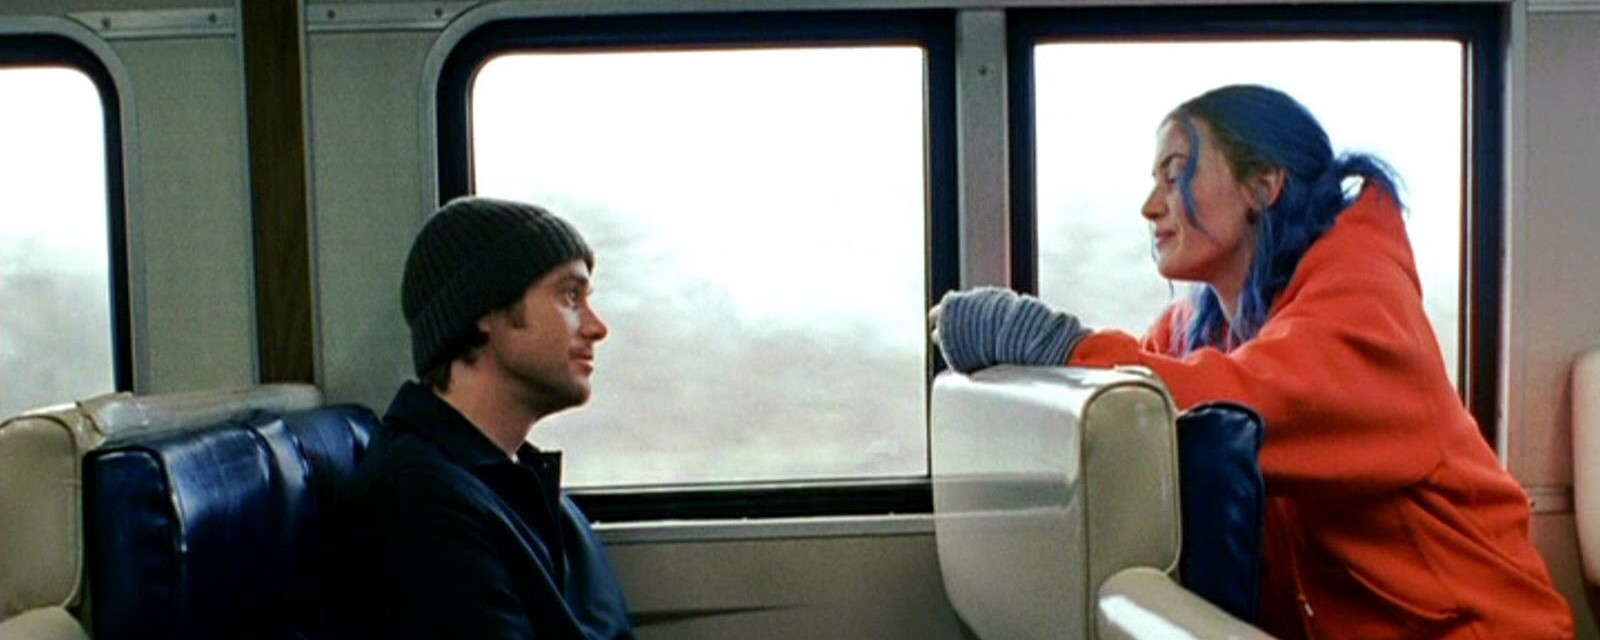 https://ccpopculture.files.wordpress.com/2014/01/commentary-objectification-eternal-sunshine-of-the-spotless-mind-e1390266065740.jpg